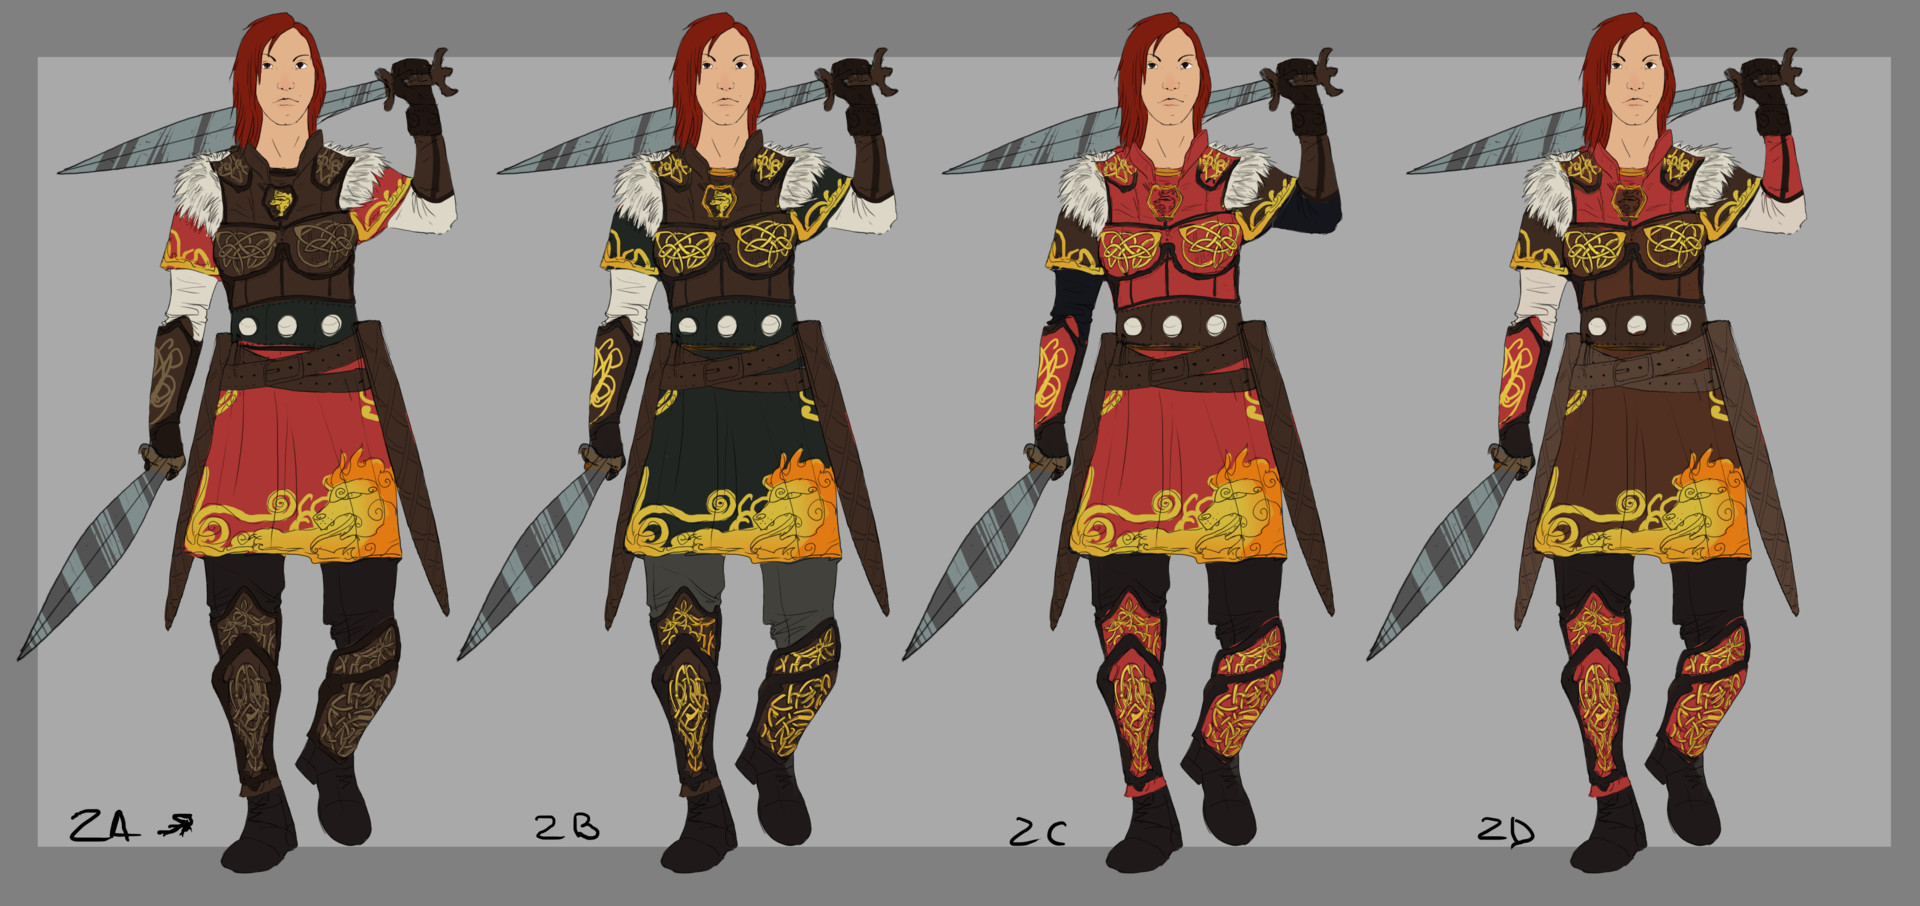 Irina kovalova warrior sketches 02